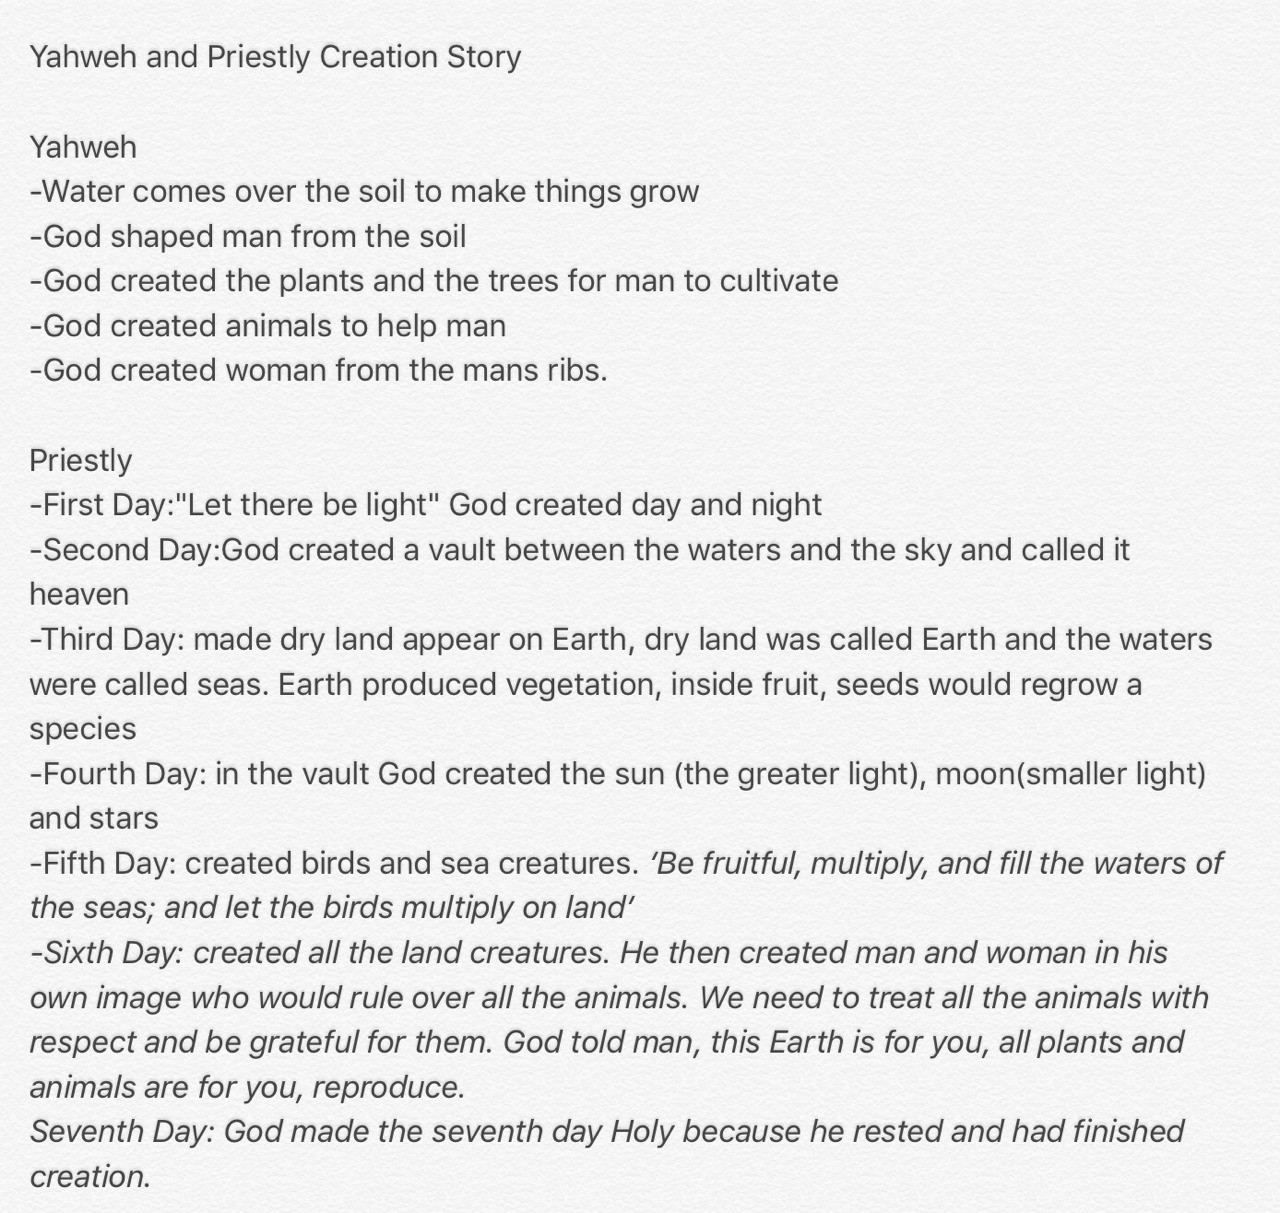 The Yahweh and Priestly creation stories